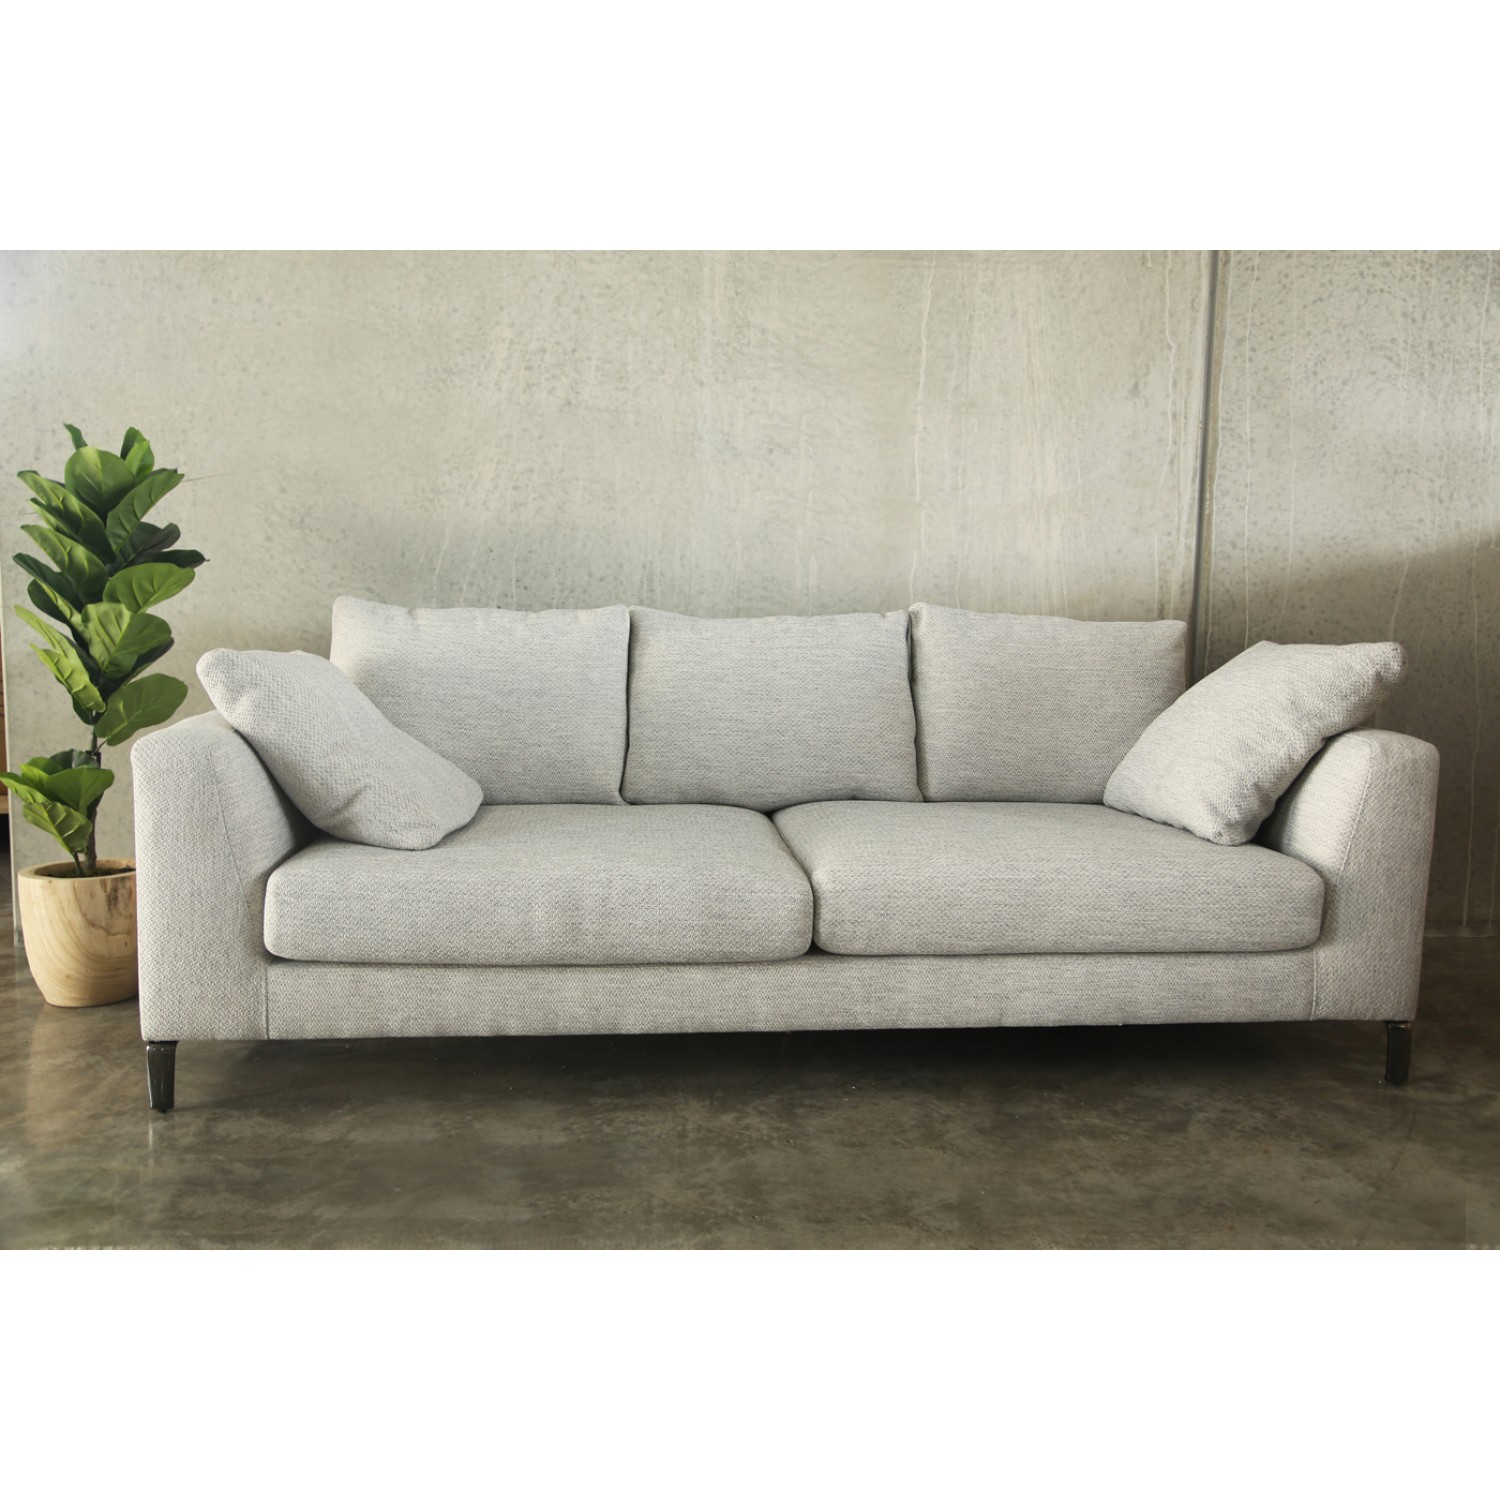 Get Comfy Going With Fabric Sofa